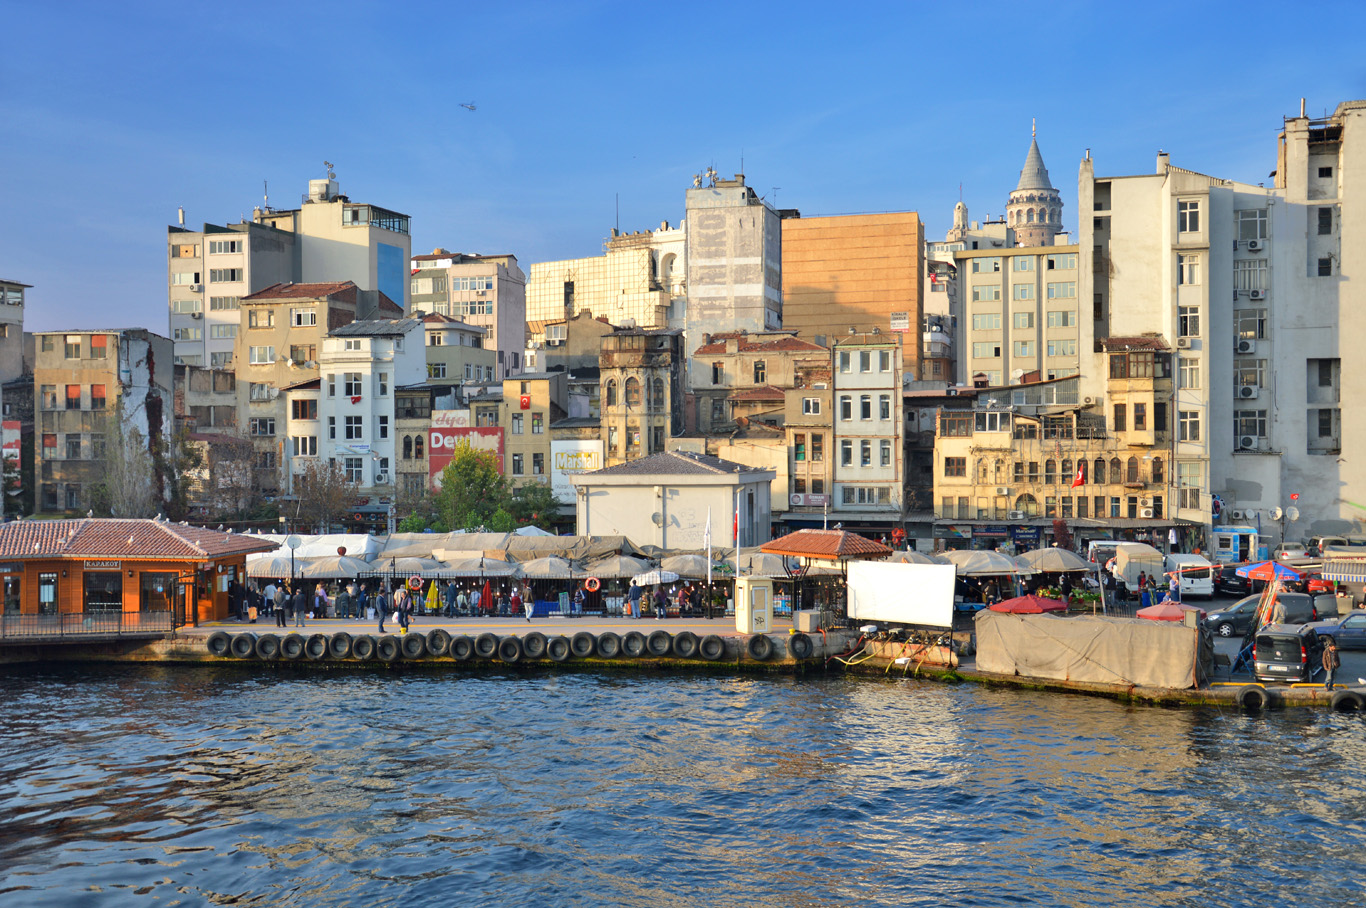 Typical, ordinary buildings in Istanbul